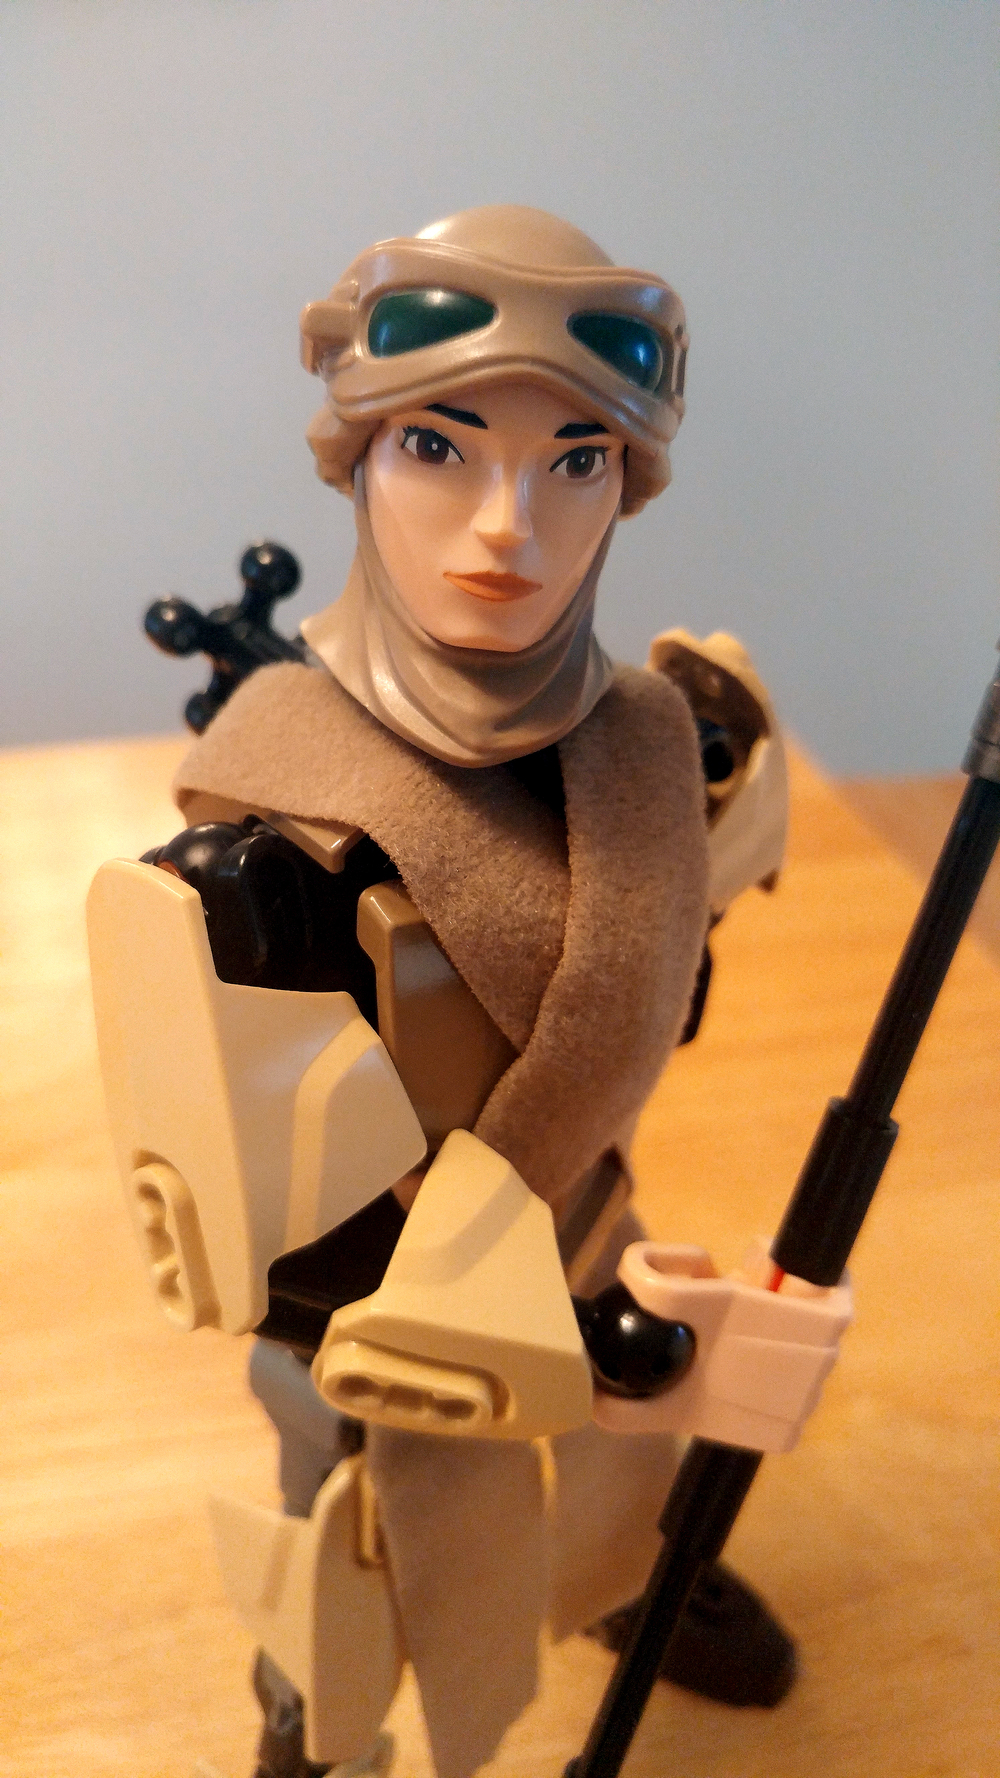 Star Wars LEGO Rey Buildable Figures Complete Constructed Close Up 5